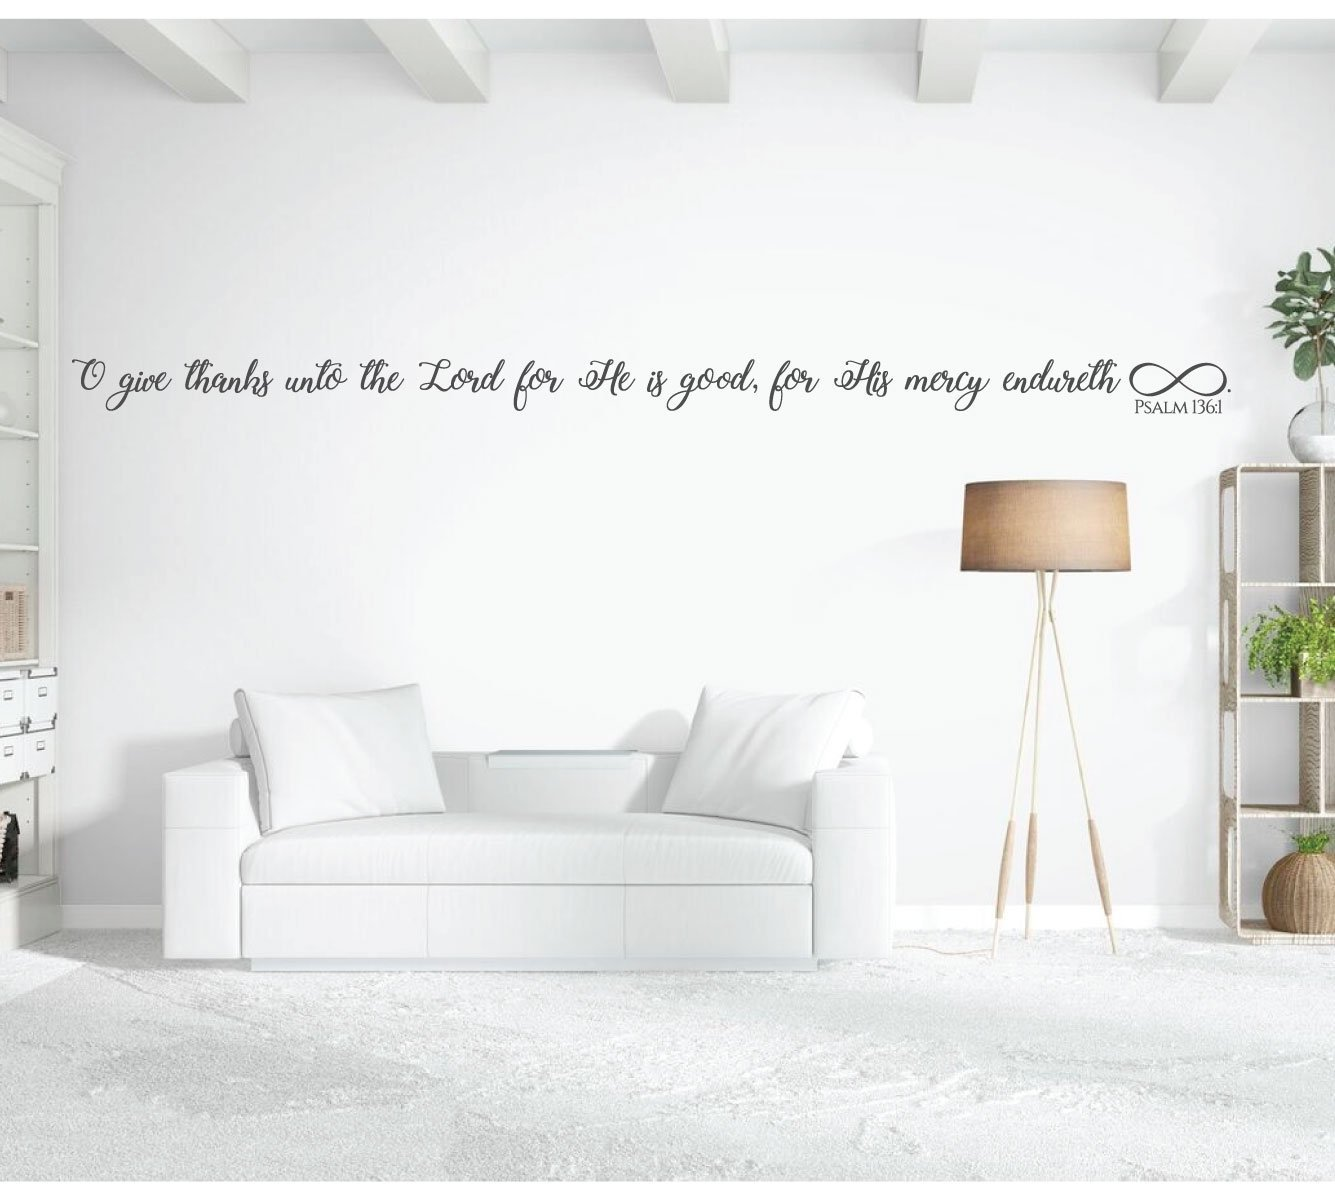 A Soft Answer Bible   Vinyl Wall Home Decor Decal Room Free /& Fast Shipping!